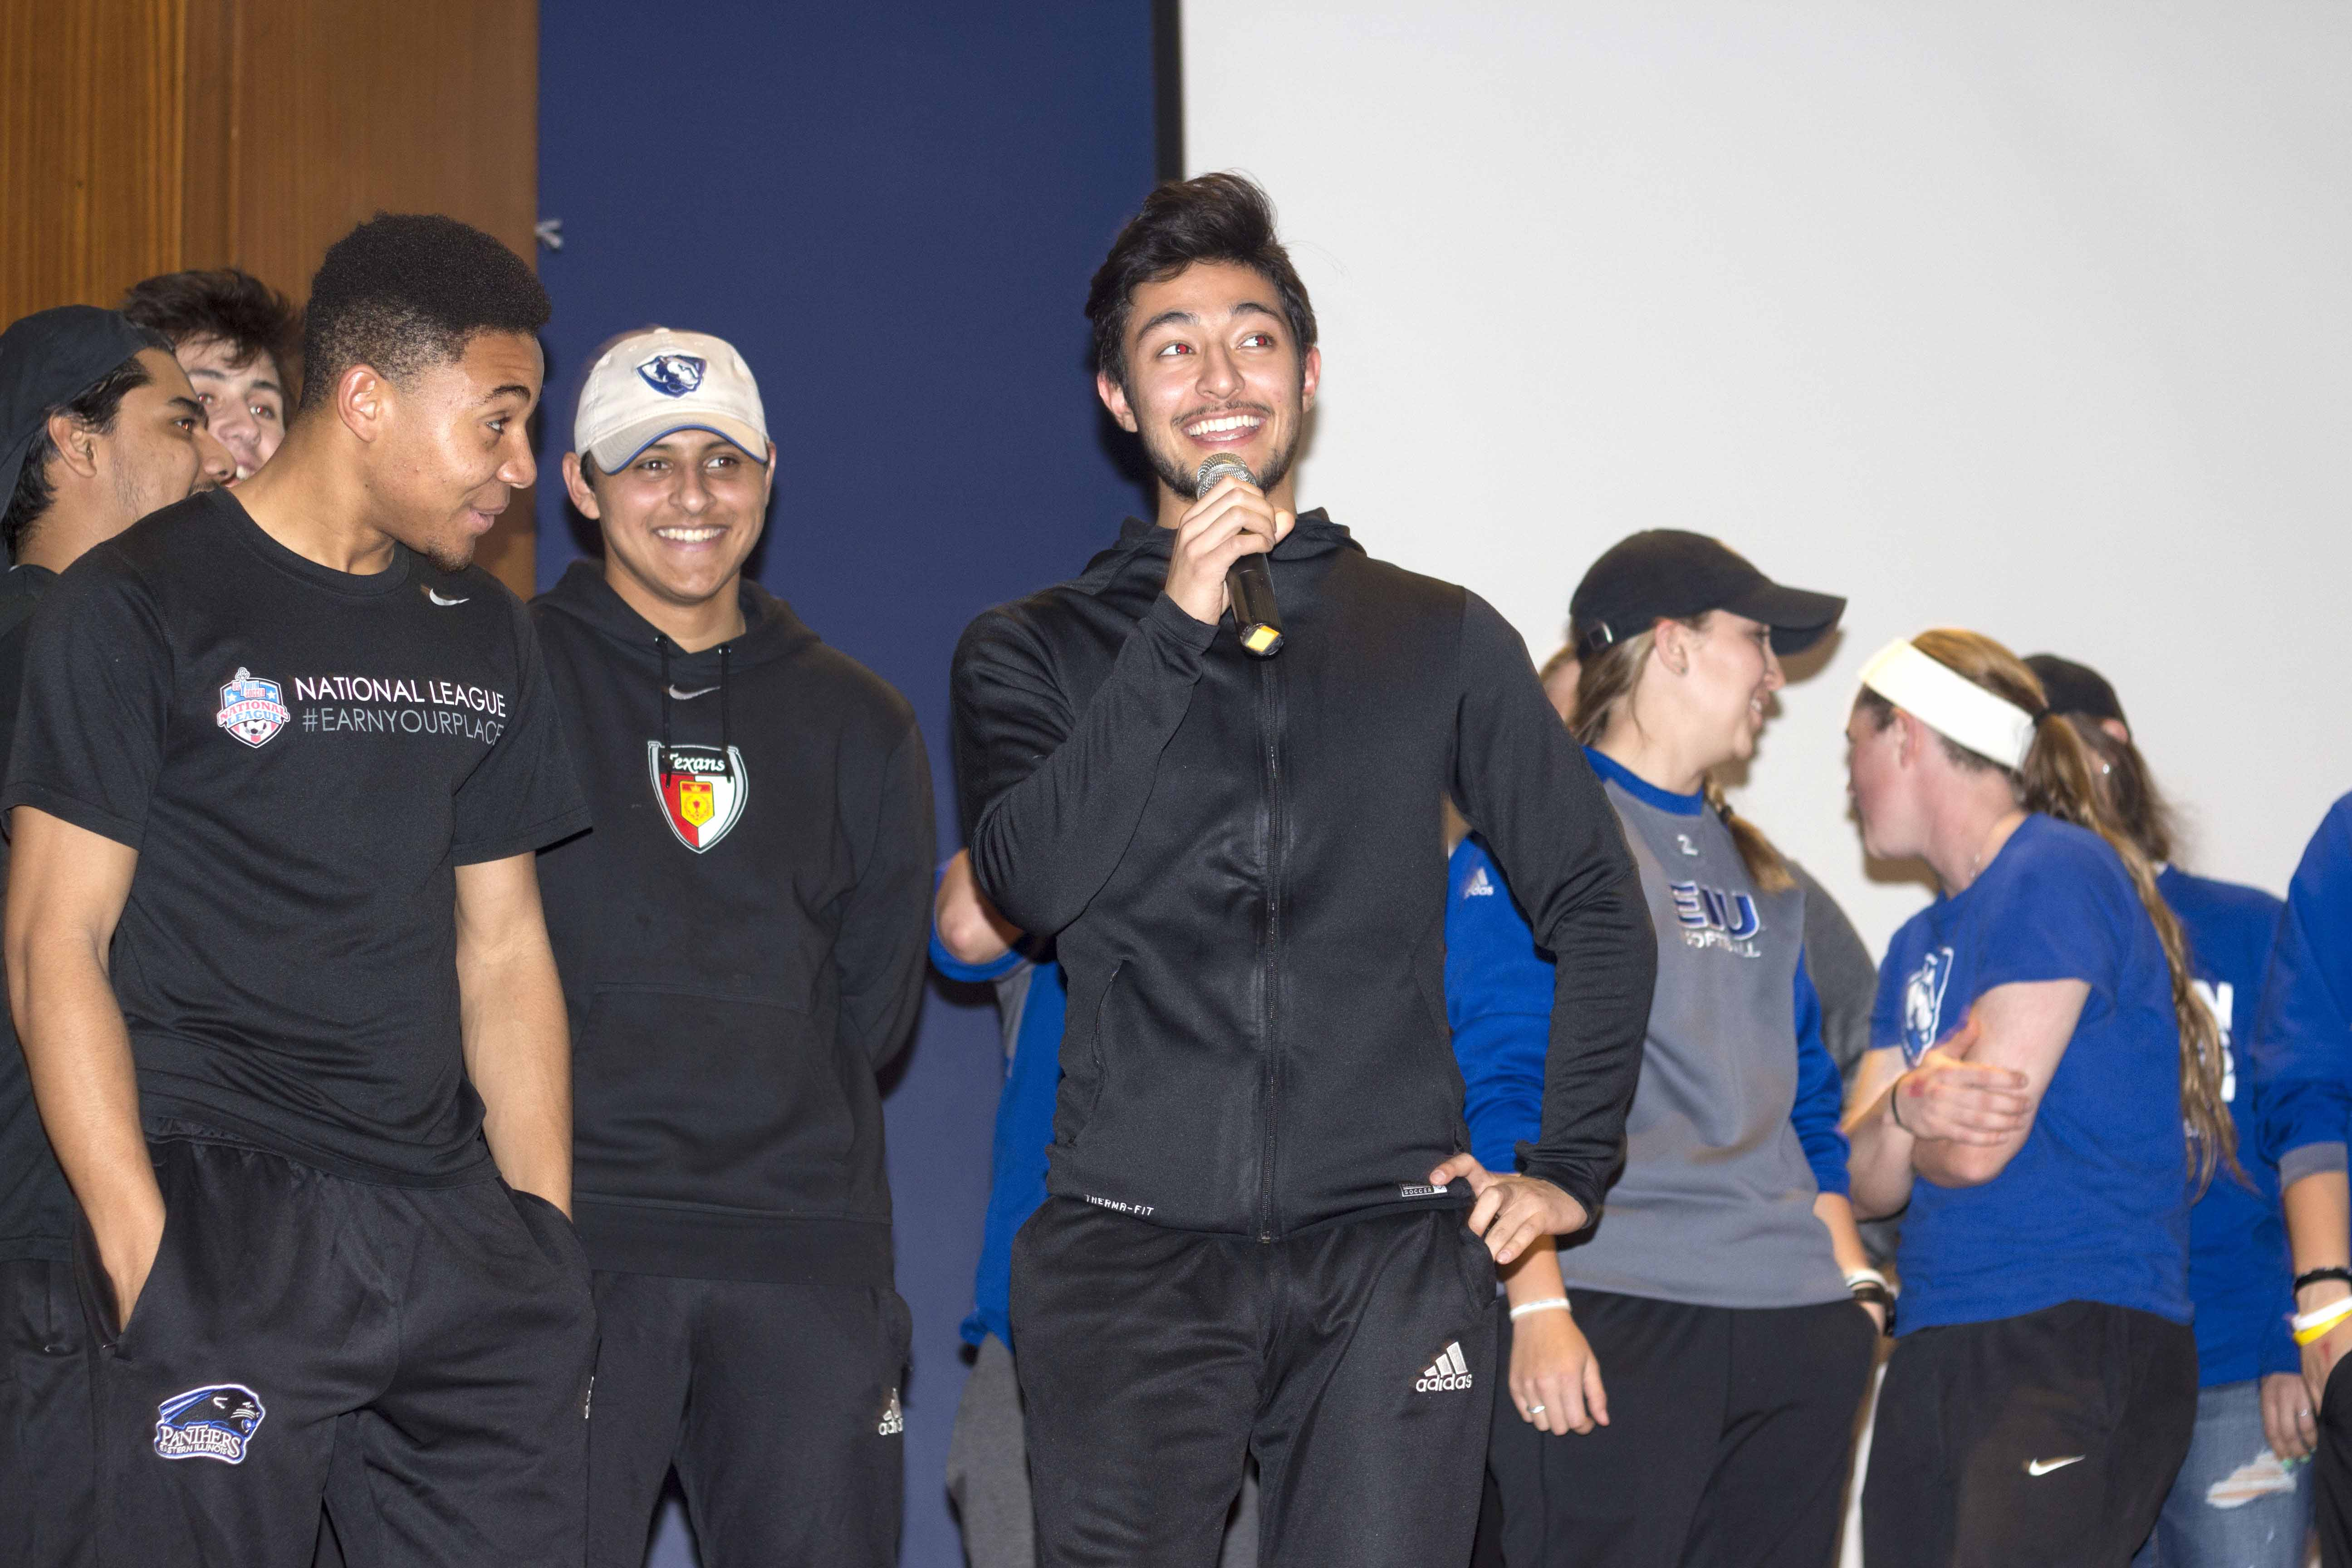 Andre Nappa, a freshman psychology major gives a quick acceptance speech on behalf of the men's soccer team, who were the winners of Jock 'n' Roll which featured skits from members of sports teams at EIU.